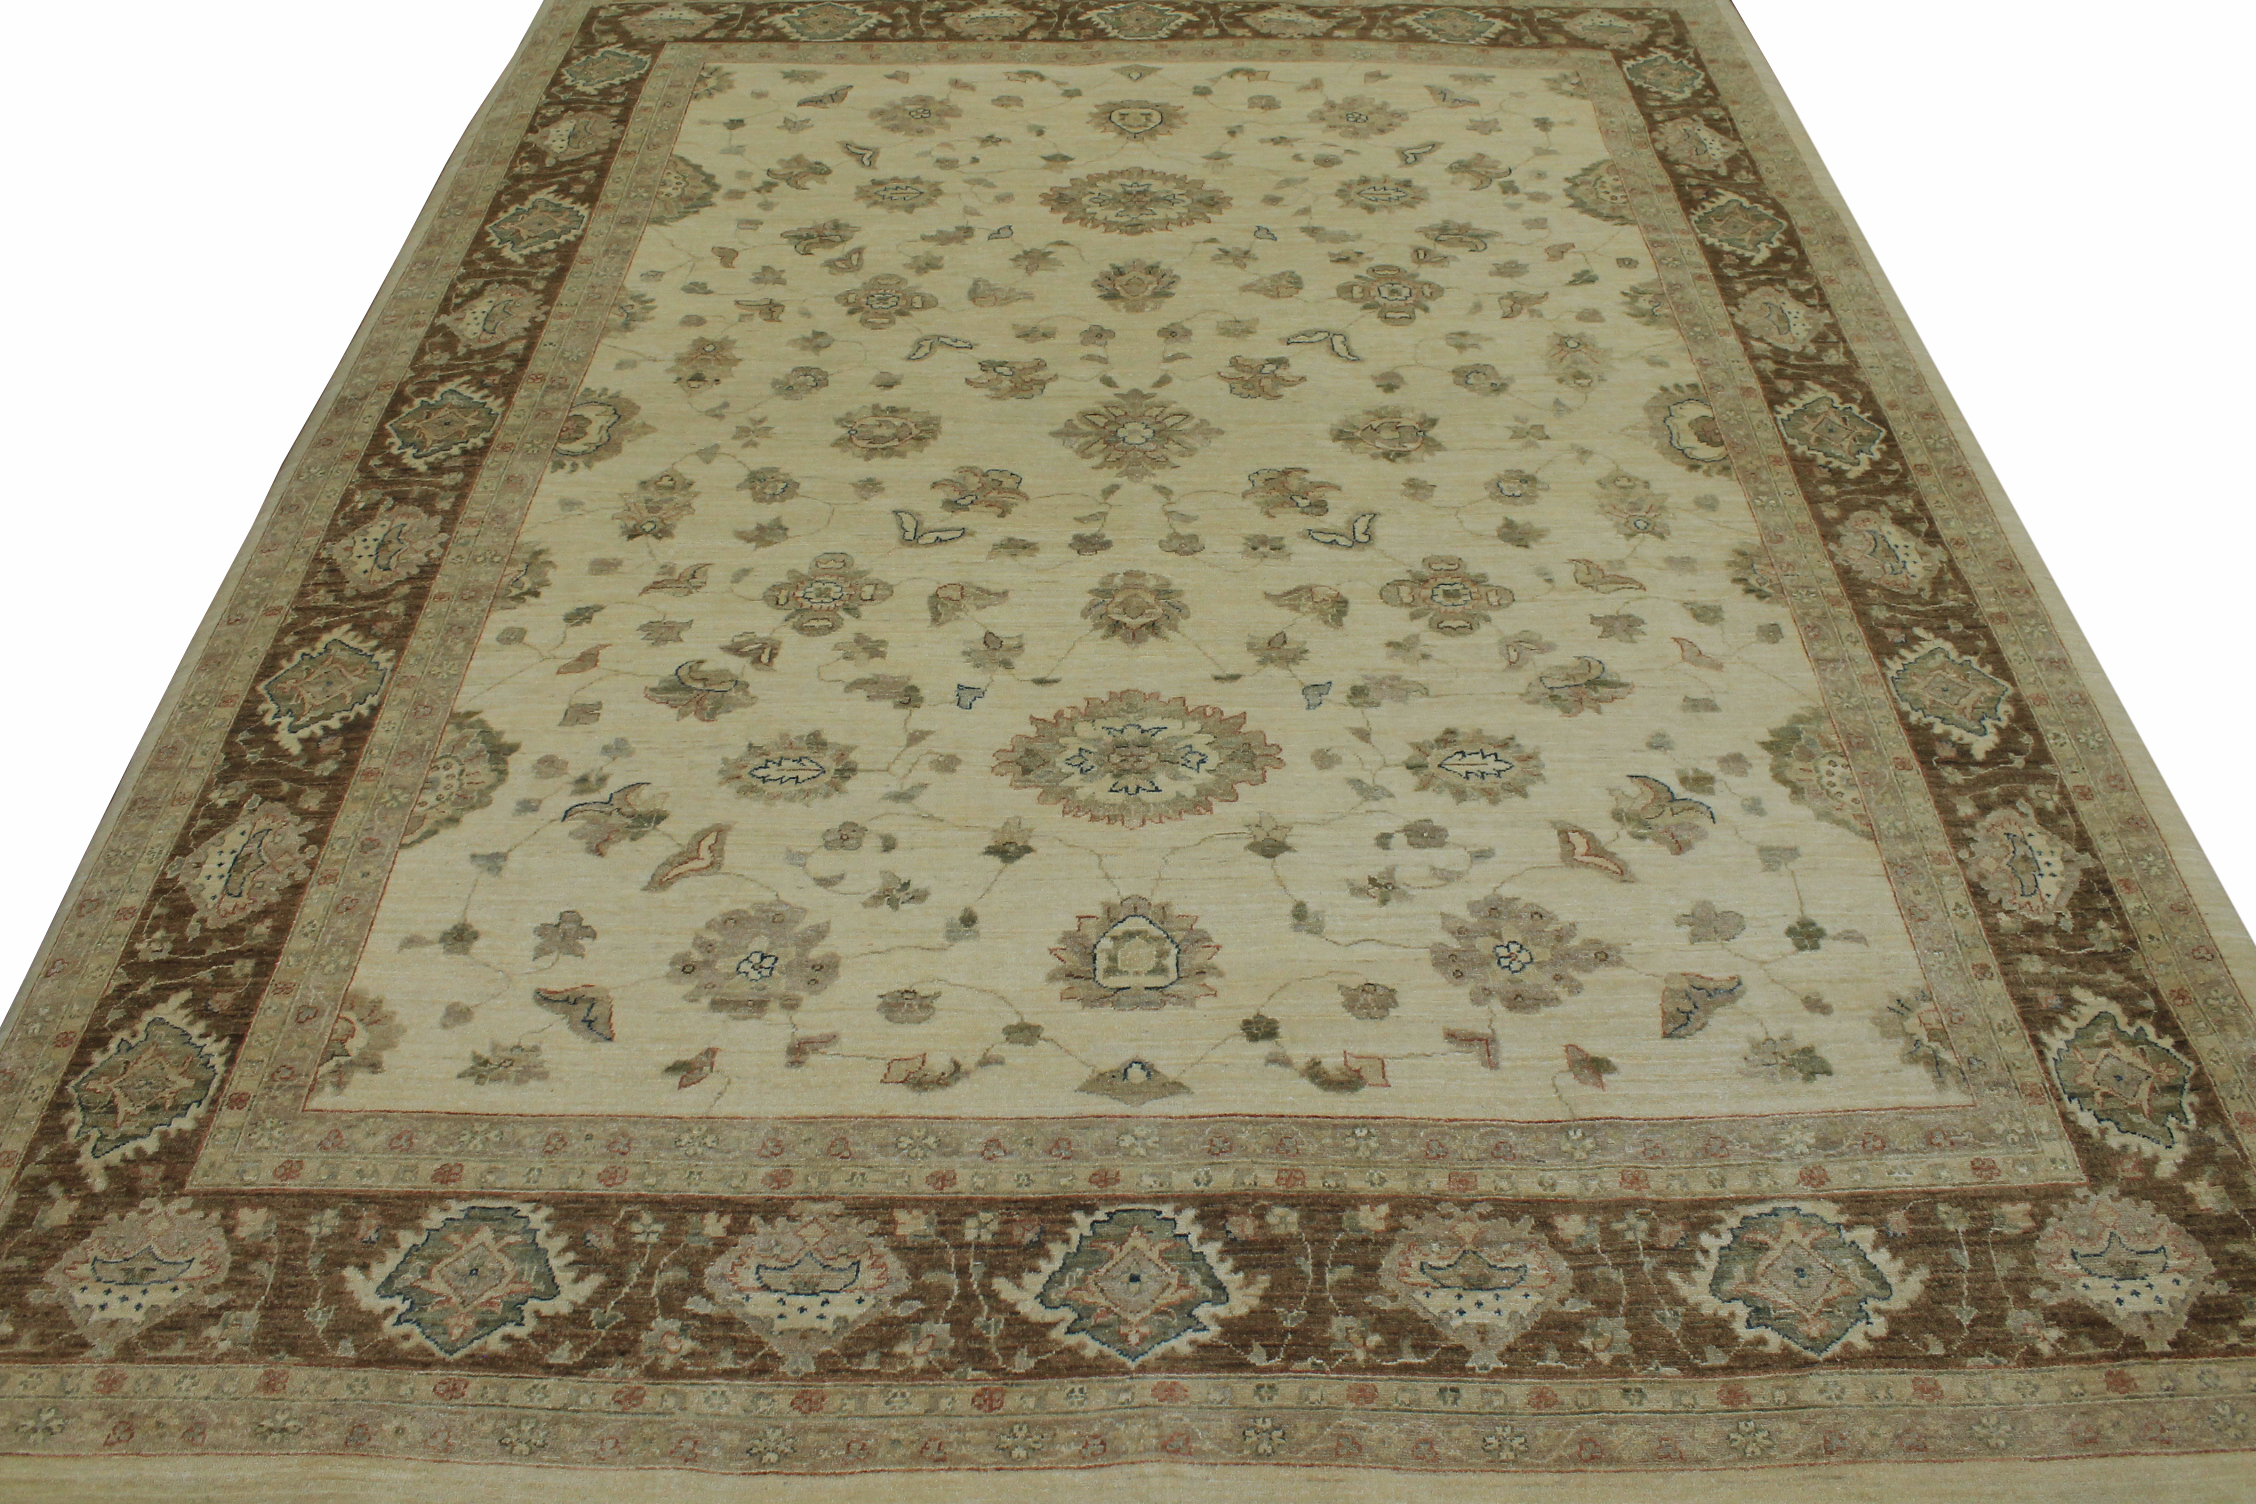 9x12 Peshawar Hand Knotted Wool Area Rug - MR11869